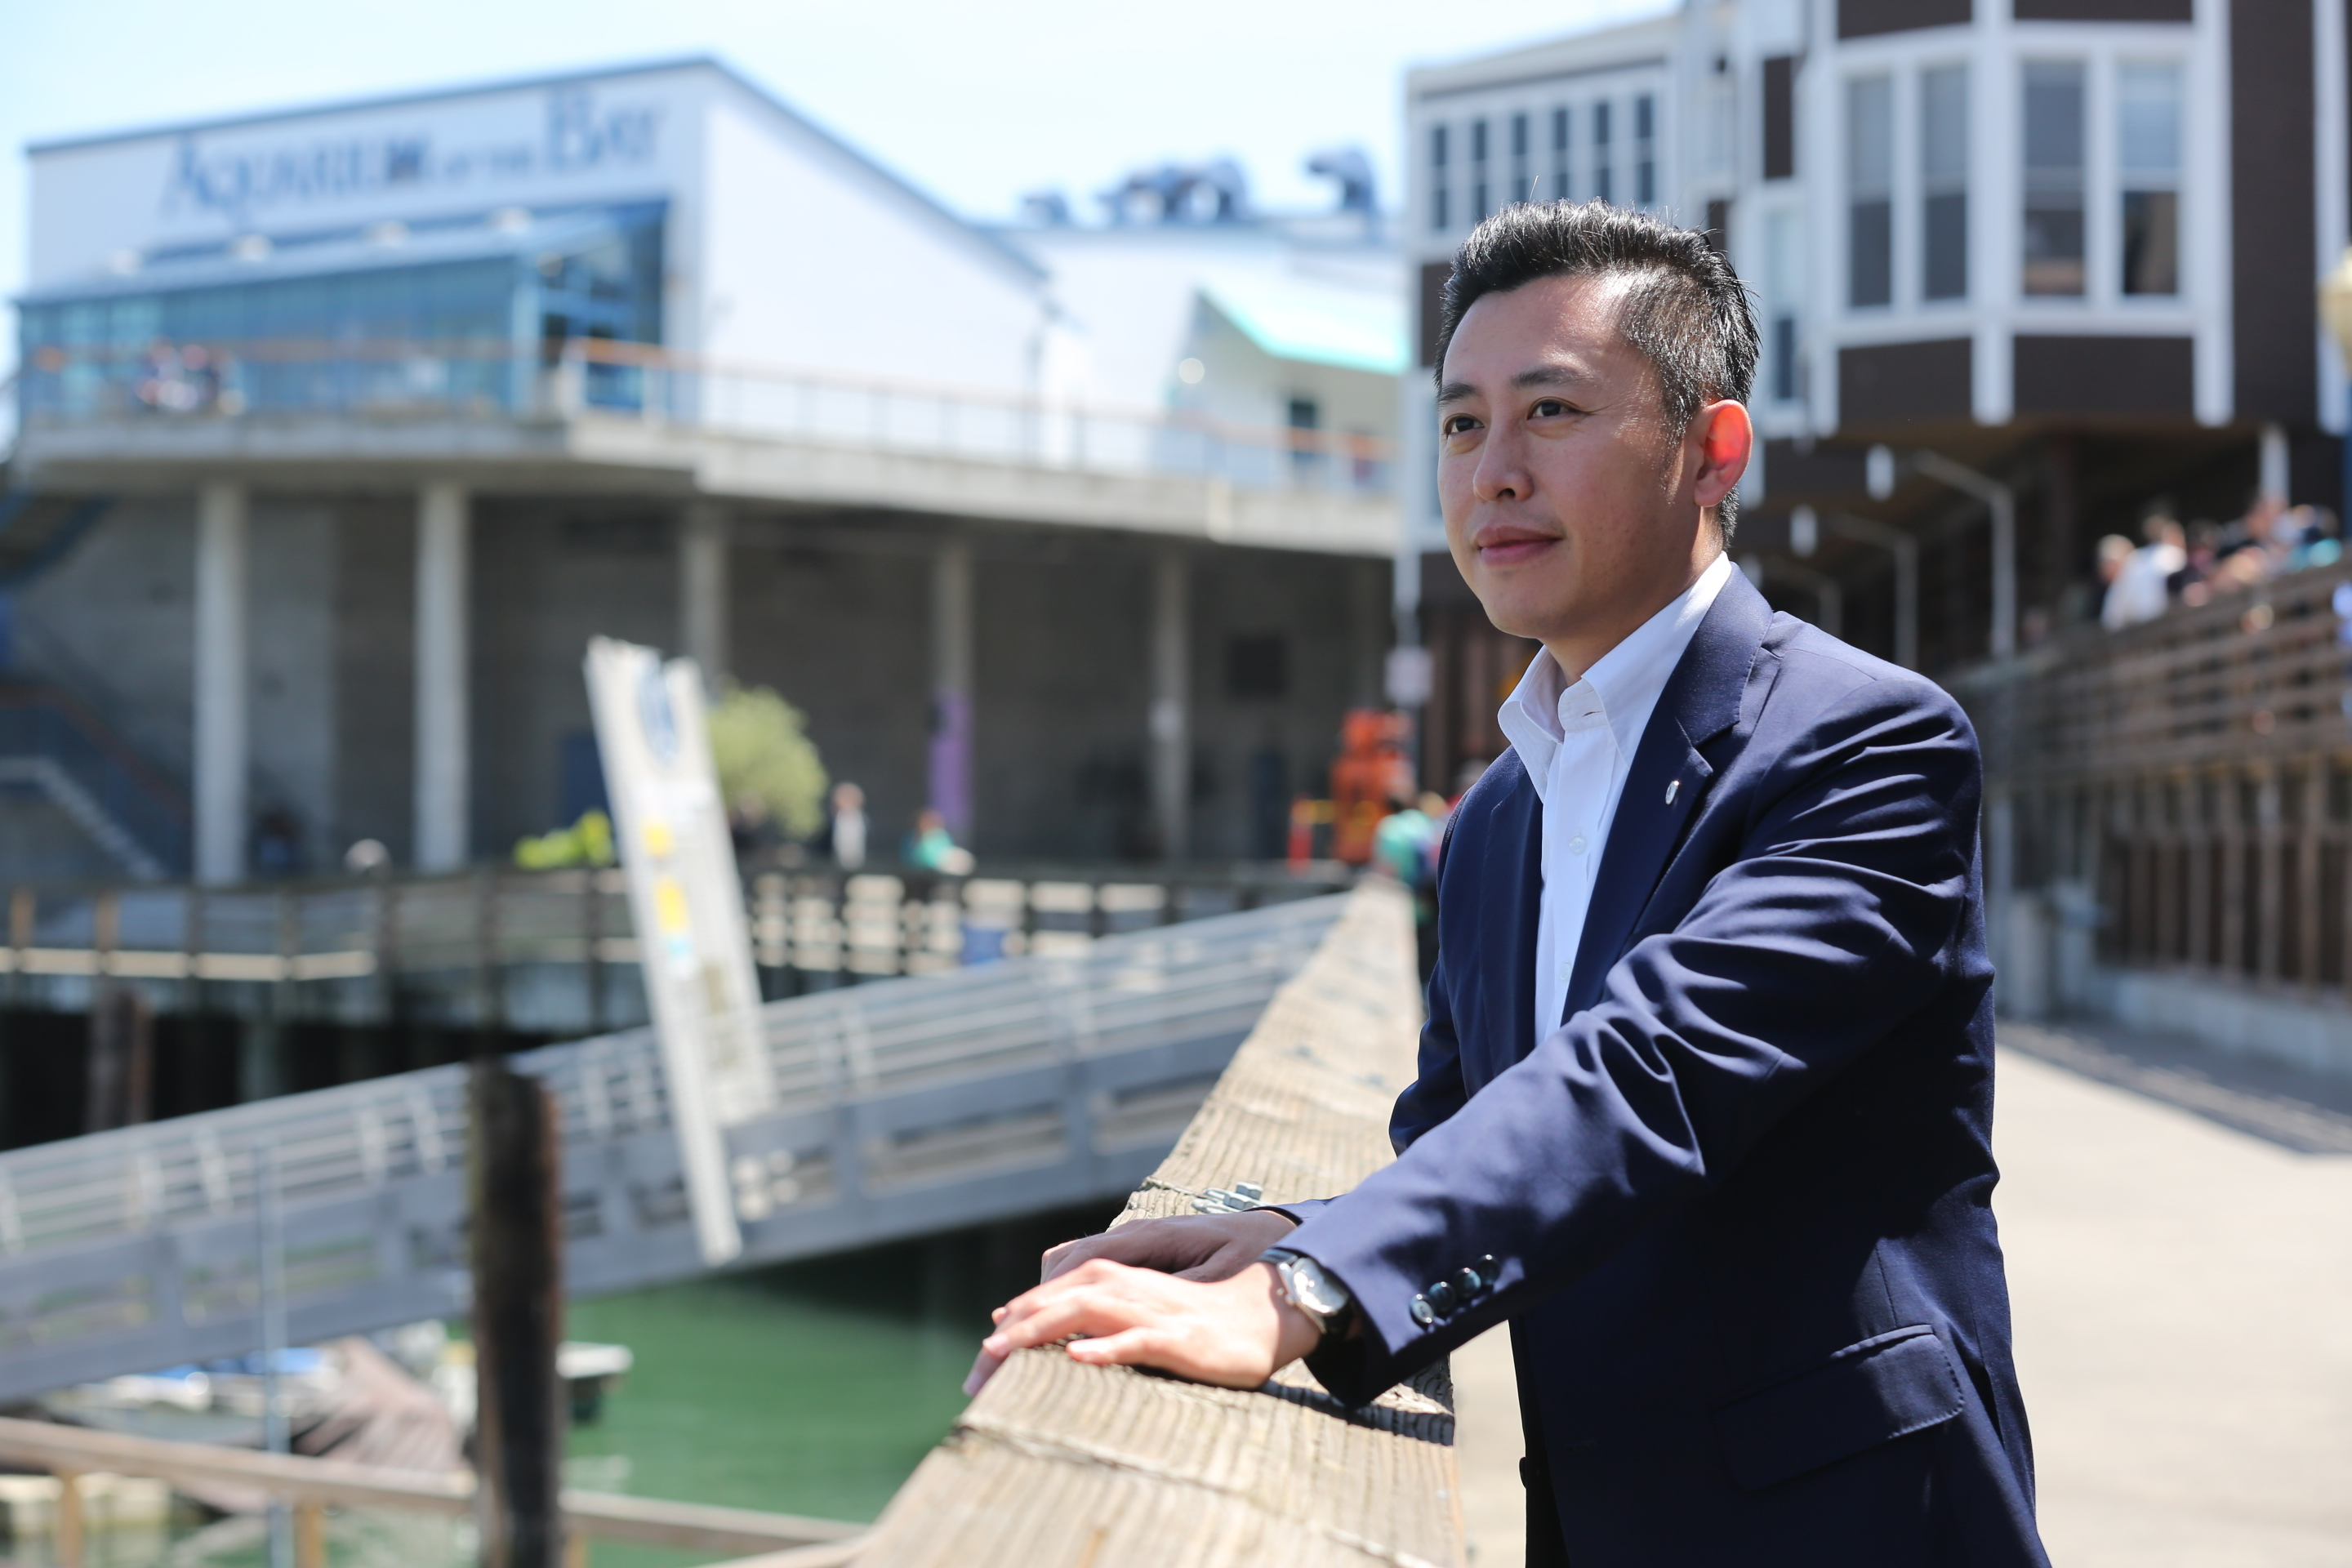 Borrowing Ideas from San Francisco Fisherman's Wharf; Hsinchu City Mayor Lin Chih-chien: Improve Tourism, Recreation, and Fishery